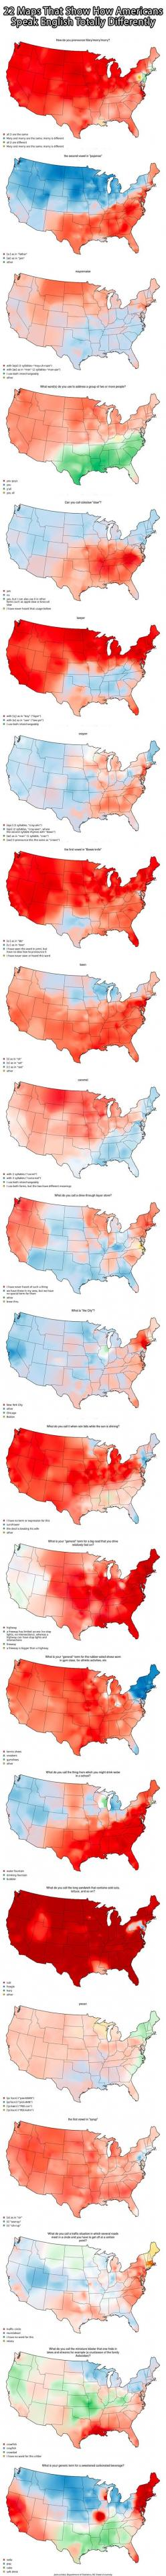 Americans Speak English Totally Differently From Each Other… this is so interesting.: Americans Speak, American Funny, American Accents, American English, Weird American Things, Speak English, English Language Funny, English Totally